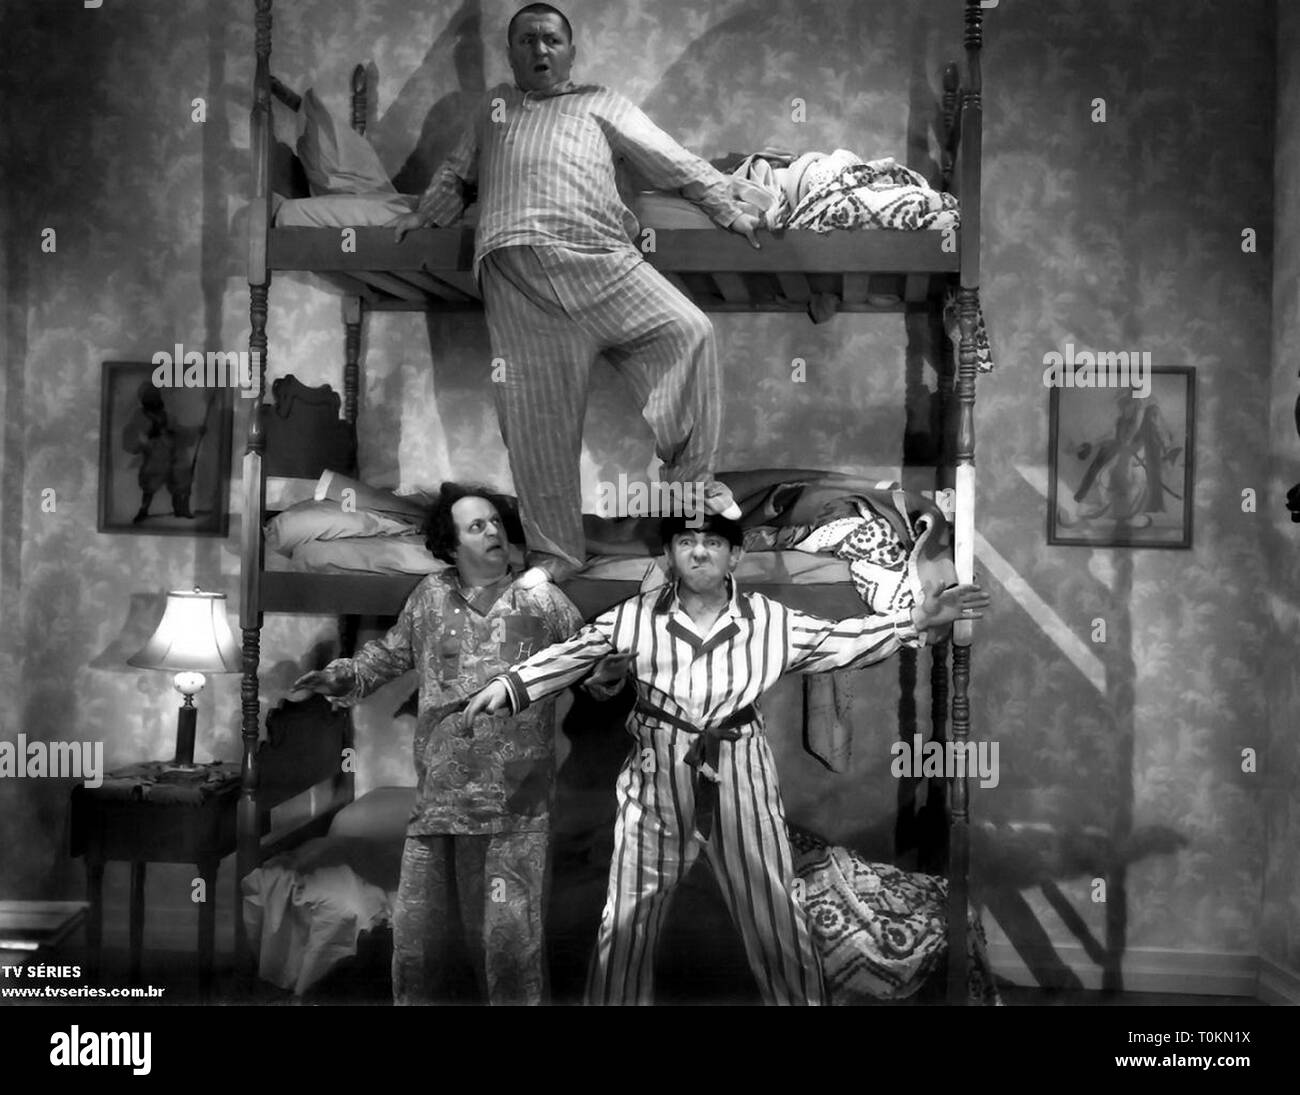 Over half a century since their last short film was released, the Three Stooges remain popular with audiences. Their films have never left American television since first appearing in 1958, and they continue to delight old fans while attracting new viewers. They were a hard-working group of comedians who were never the critics' darlings, a durable act who endured several personnel changes in their careers that would have permanently sidelined a less persistent act. Credit: Hollywood Photo Archive / MediaPunch - Stock Image